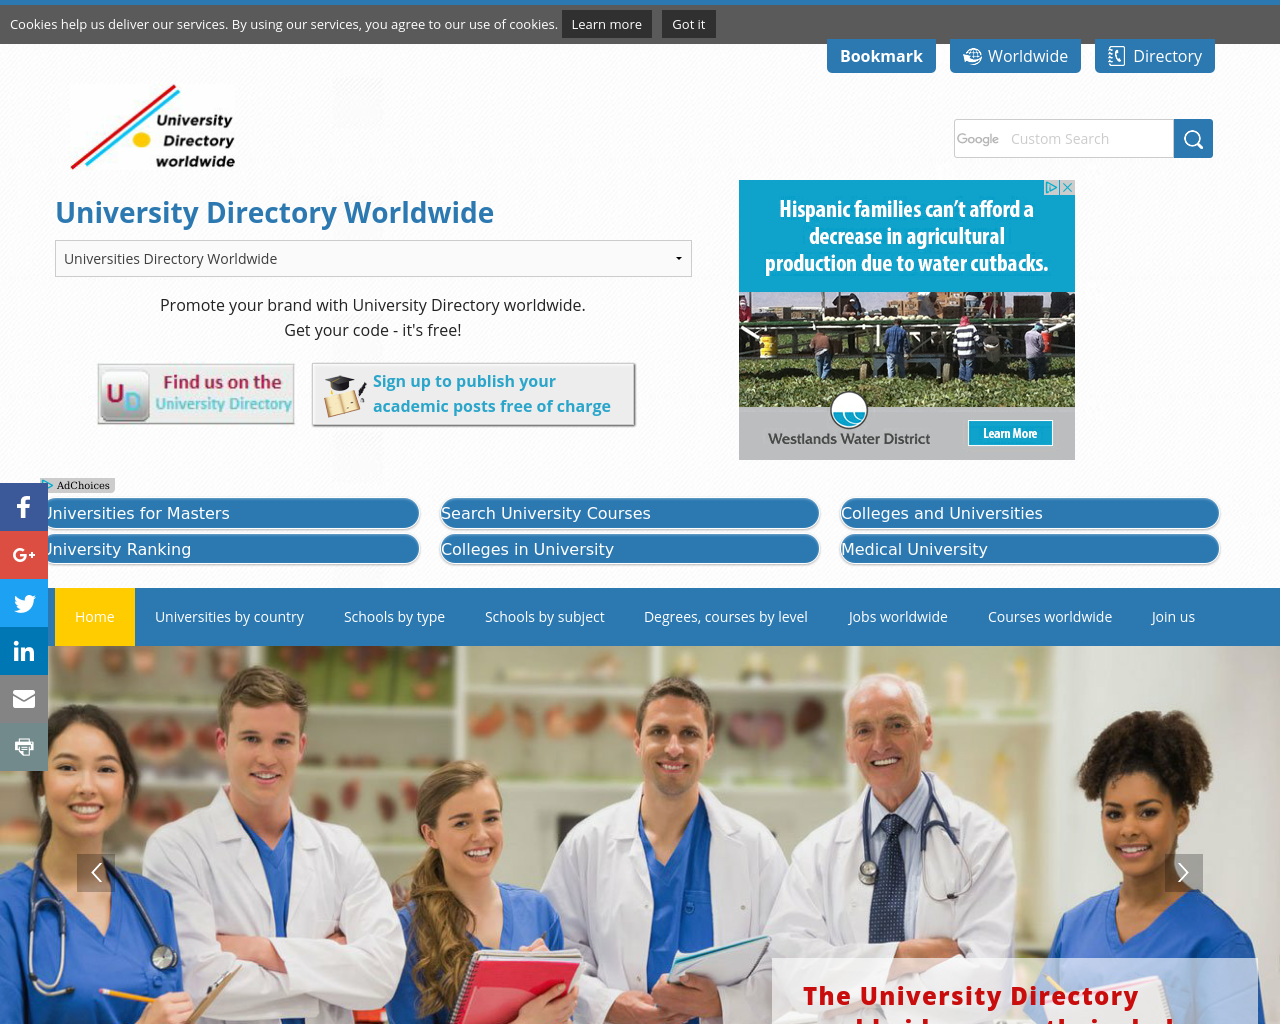 University-Directory-Worldwide-Advertising-Reviews-Pricing